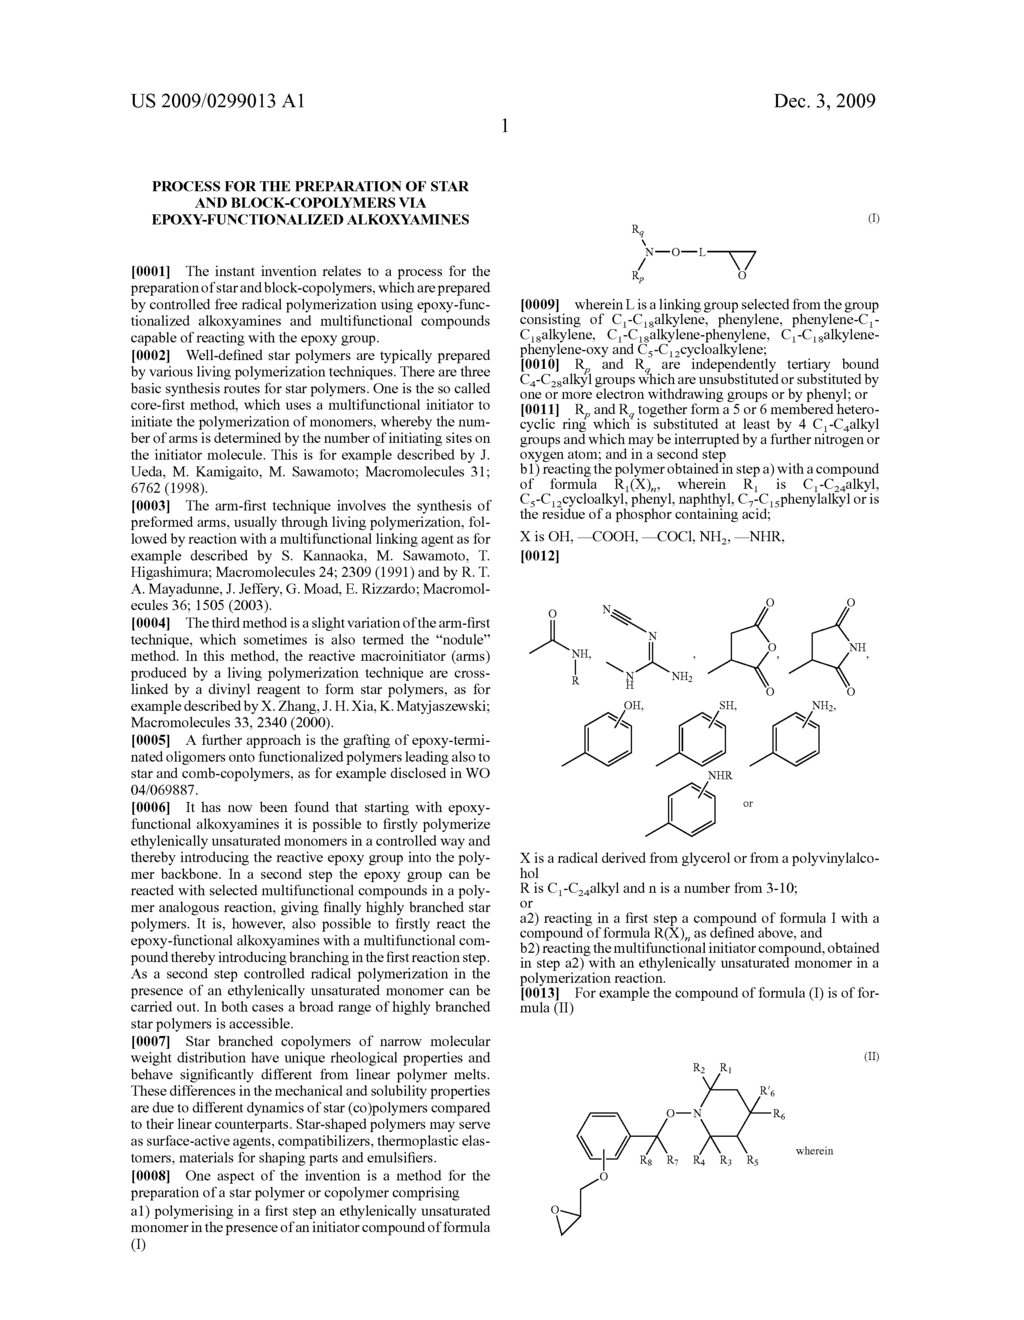 Process for the Preparation of Star and Block-Copolymers Via Epoxy-Functionalized Alkoxyamines - diagram, schematic, and image 02